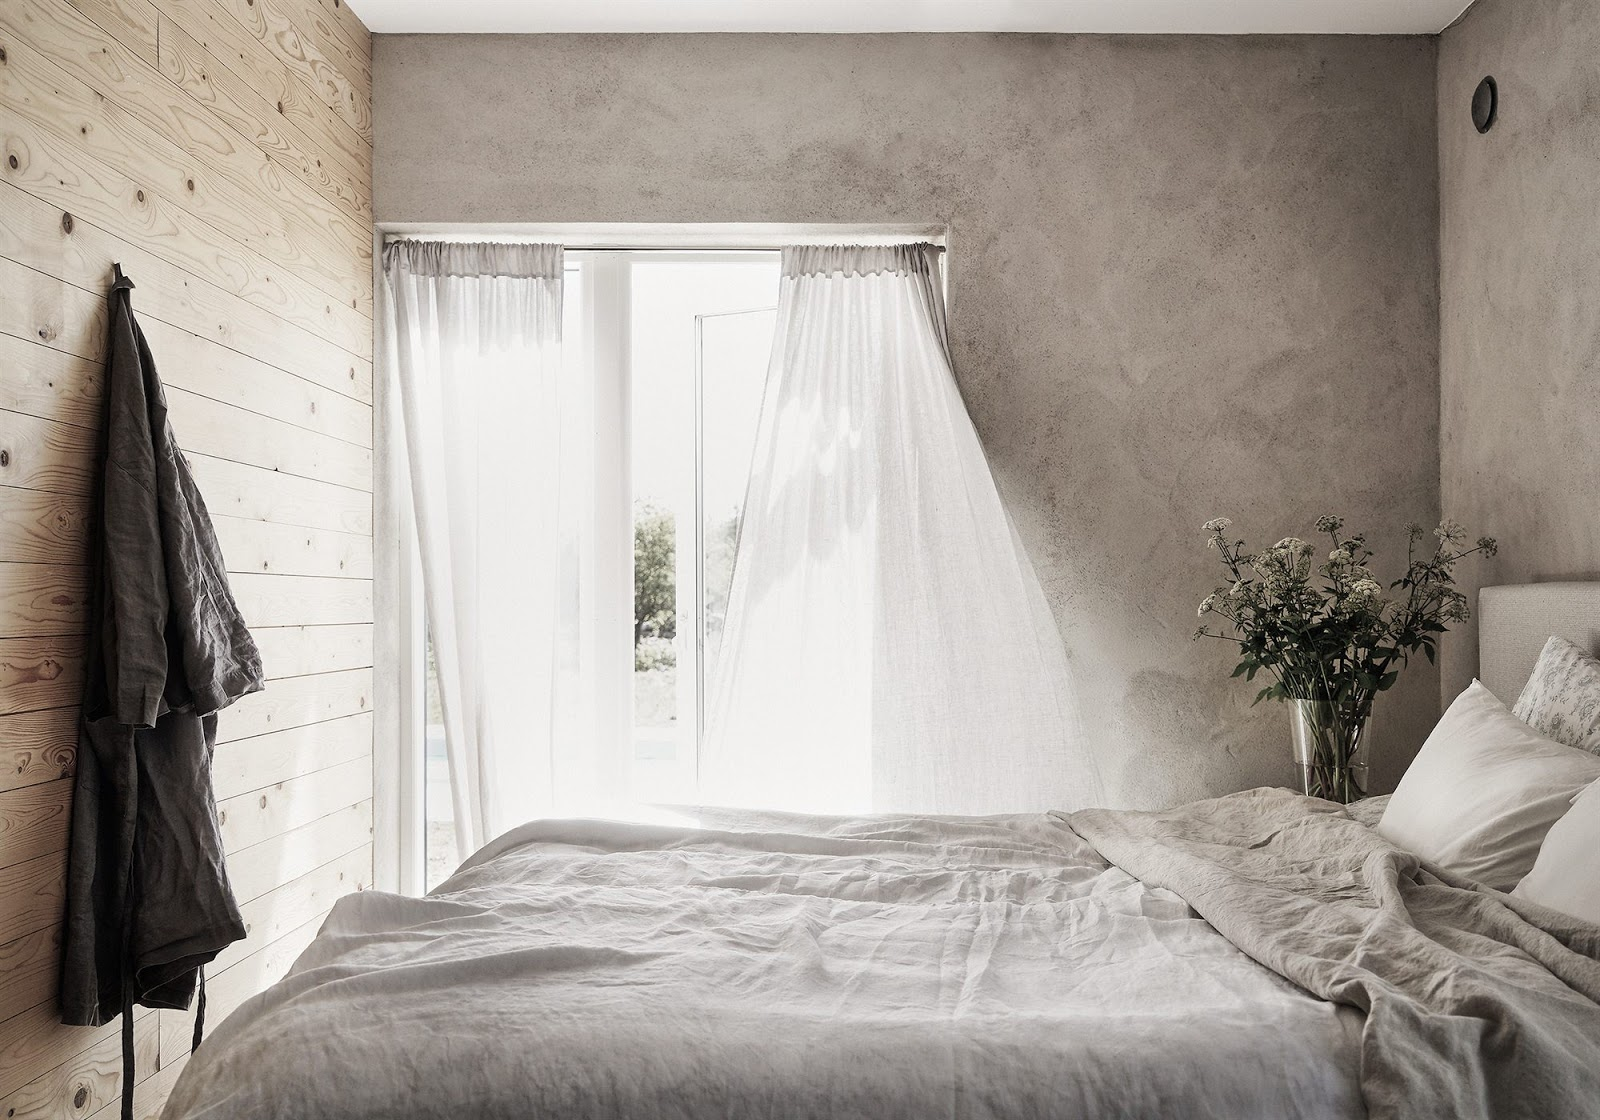 The master bedroom is decorated with concrete, fabrics give texture to the decor